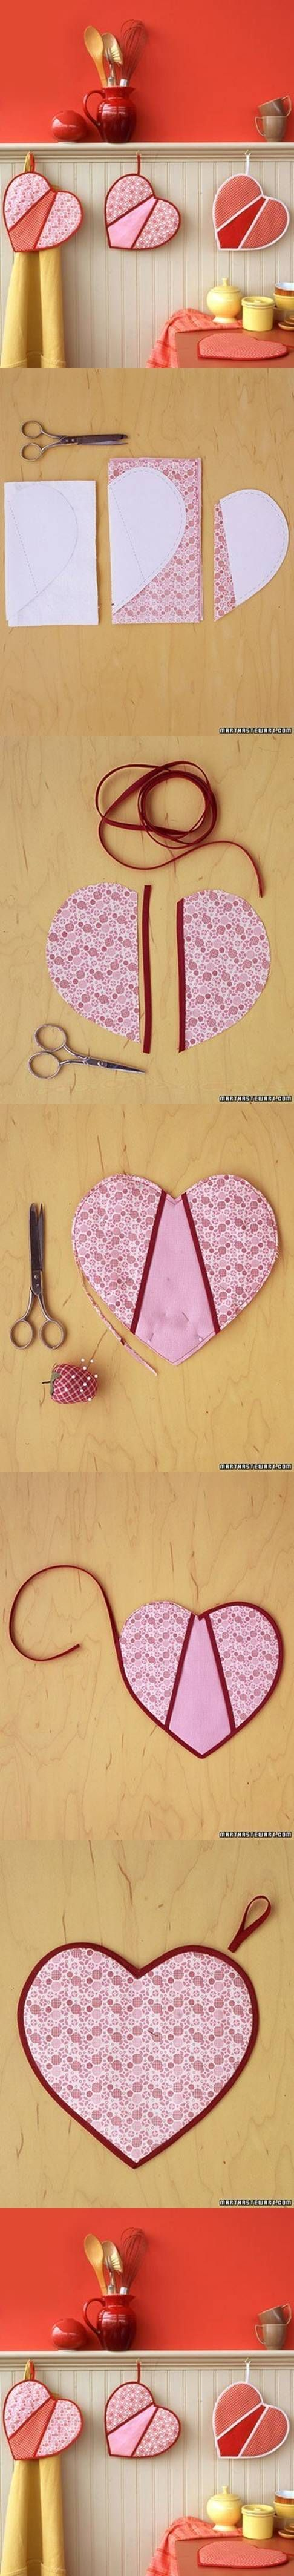 DIY Heart Shaped Pot Holders  <3